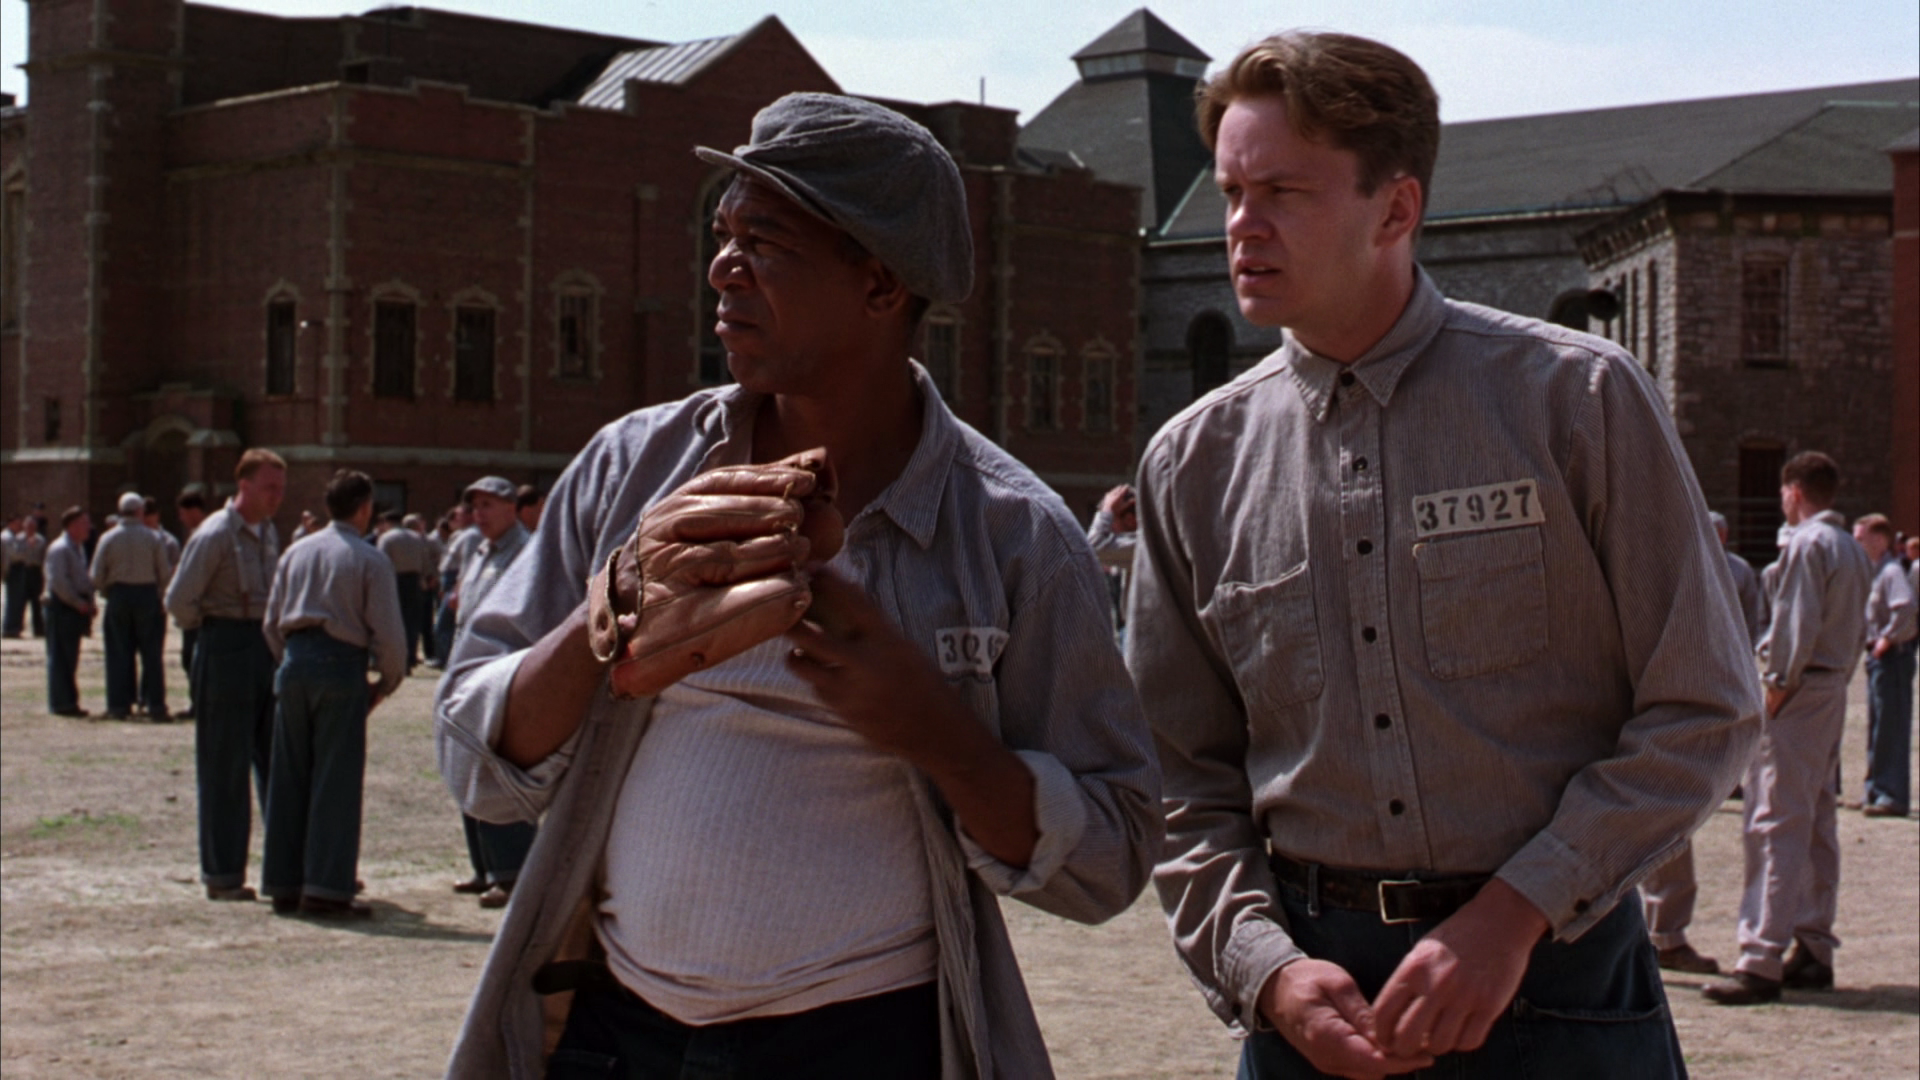 shawshank redemption themes The shawshank redemption is a 1994 american drama film written and directed  by frank darabont, based on the 1982 stephen king novella rita hayworth.